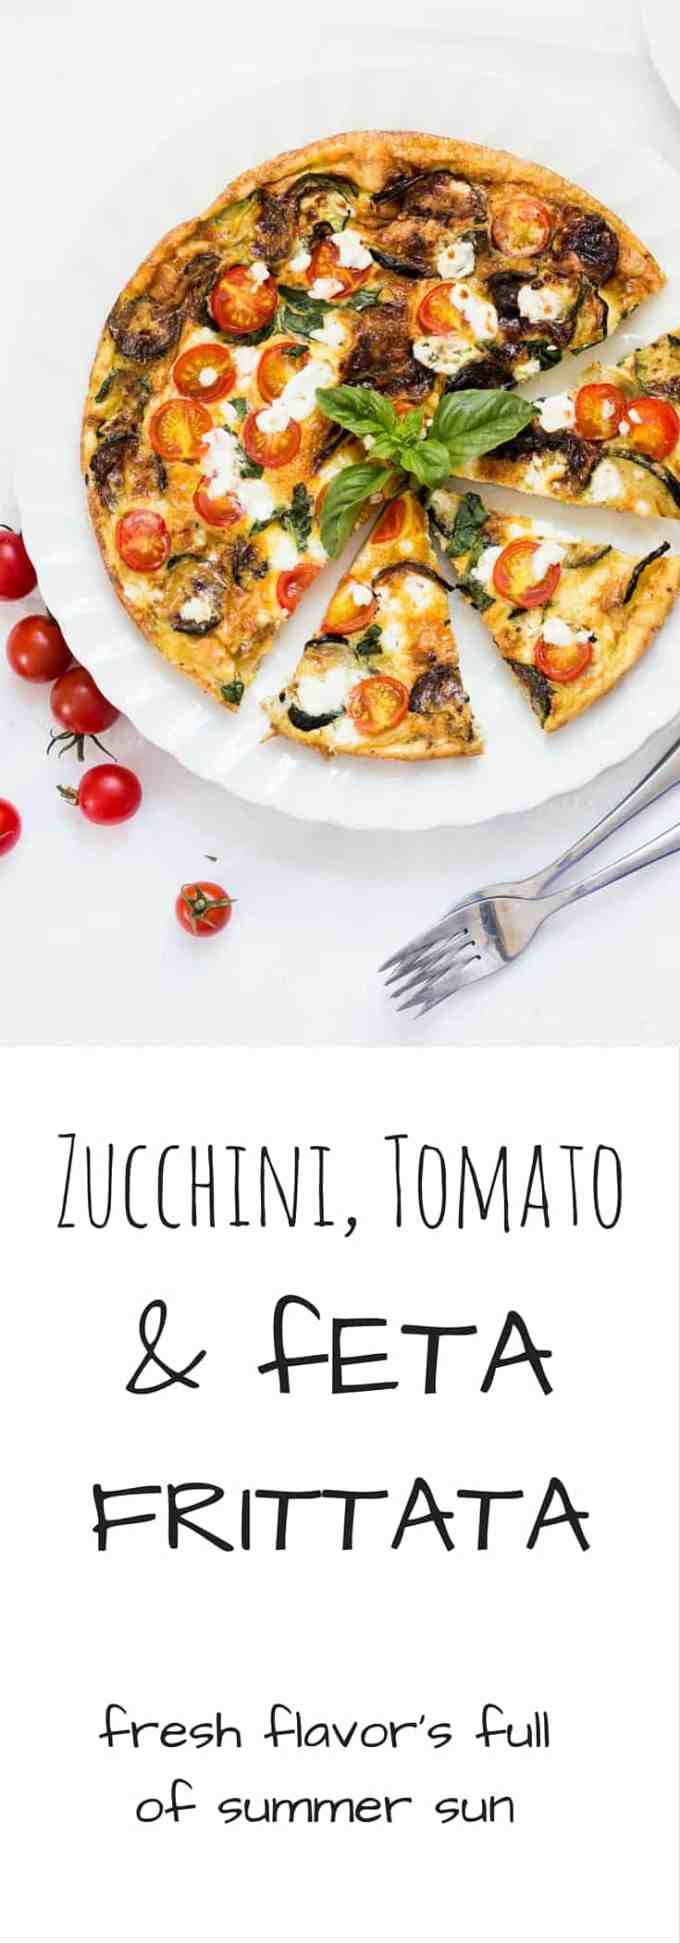 Enjoy the best summer has to offer in thisZucchini, Tomato and Feta Frittata. Bursting with delicious fresh seasonal flavors and ready to be packed up for a picnic and shared with friends and family.